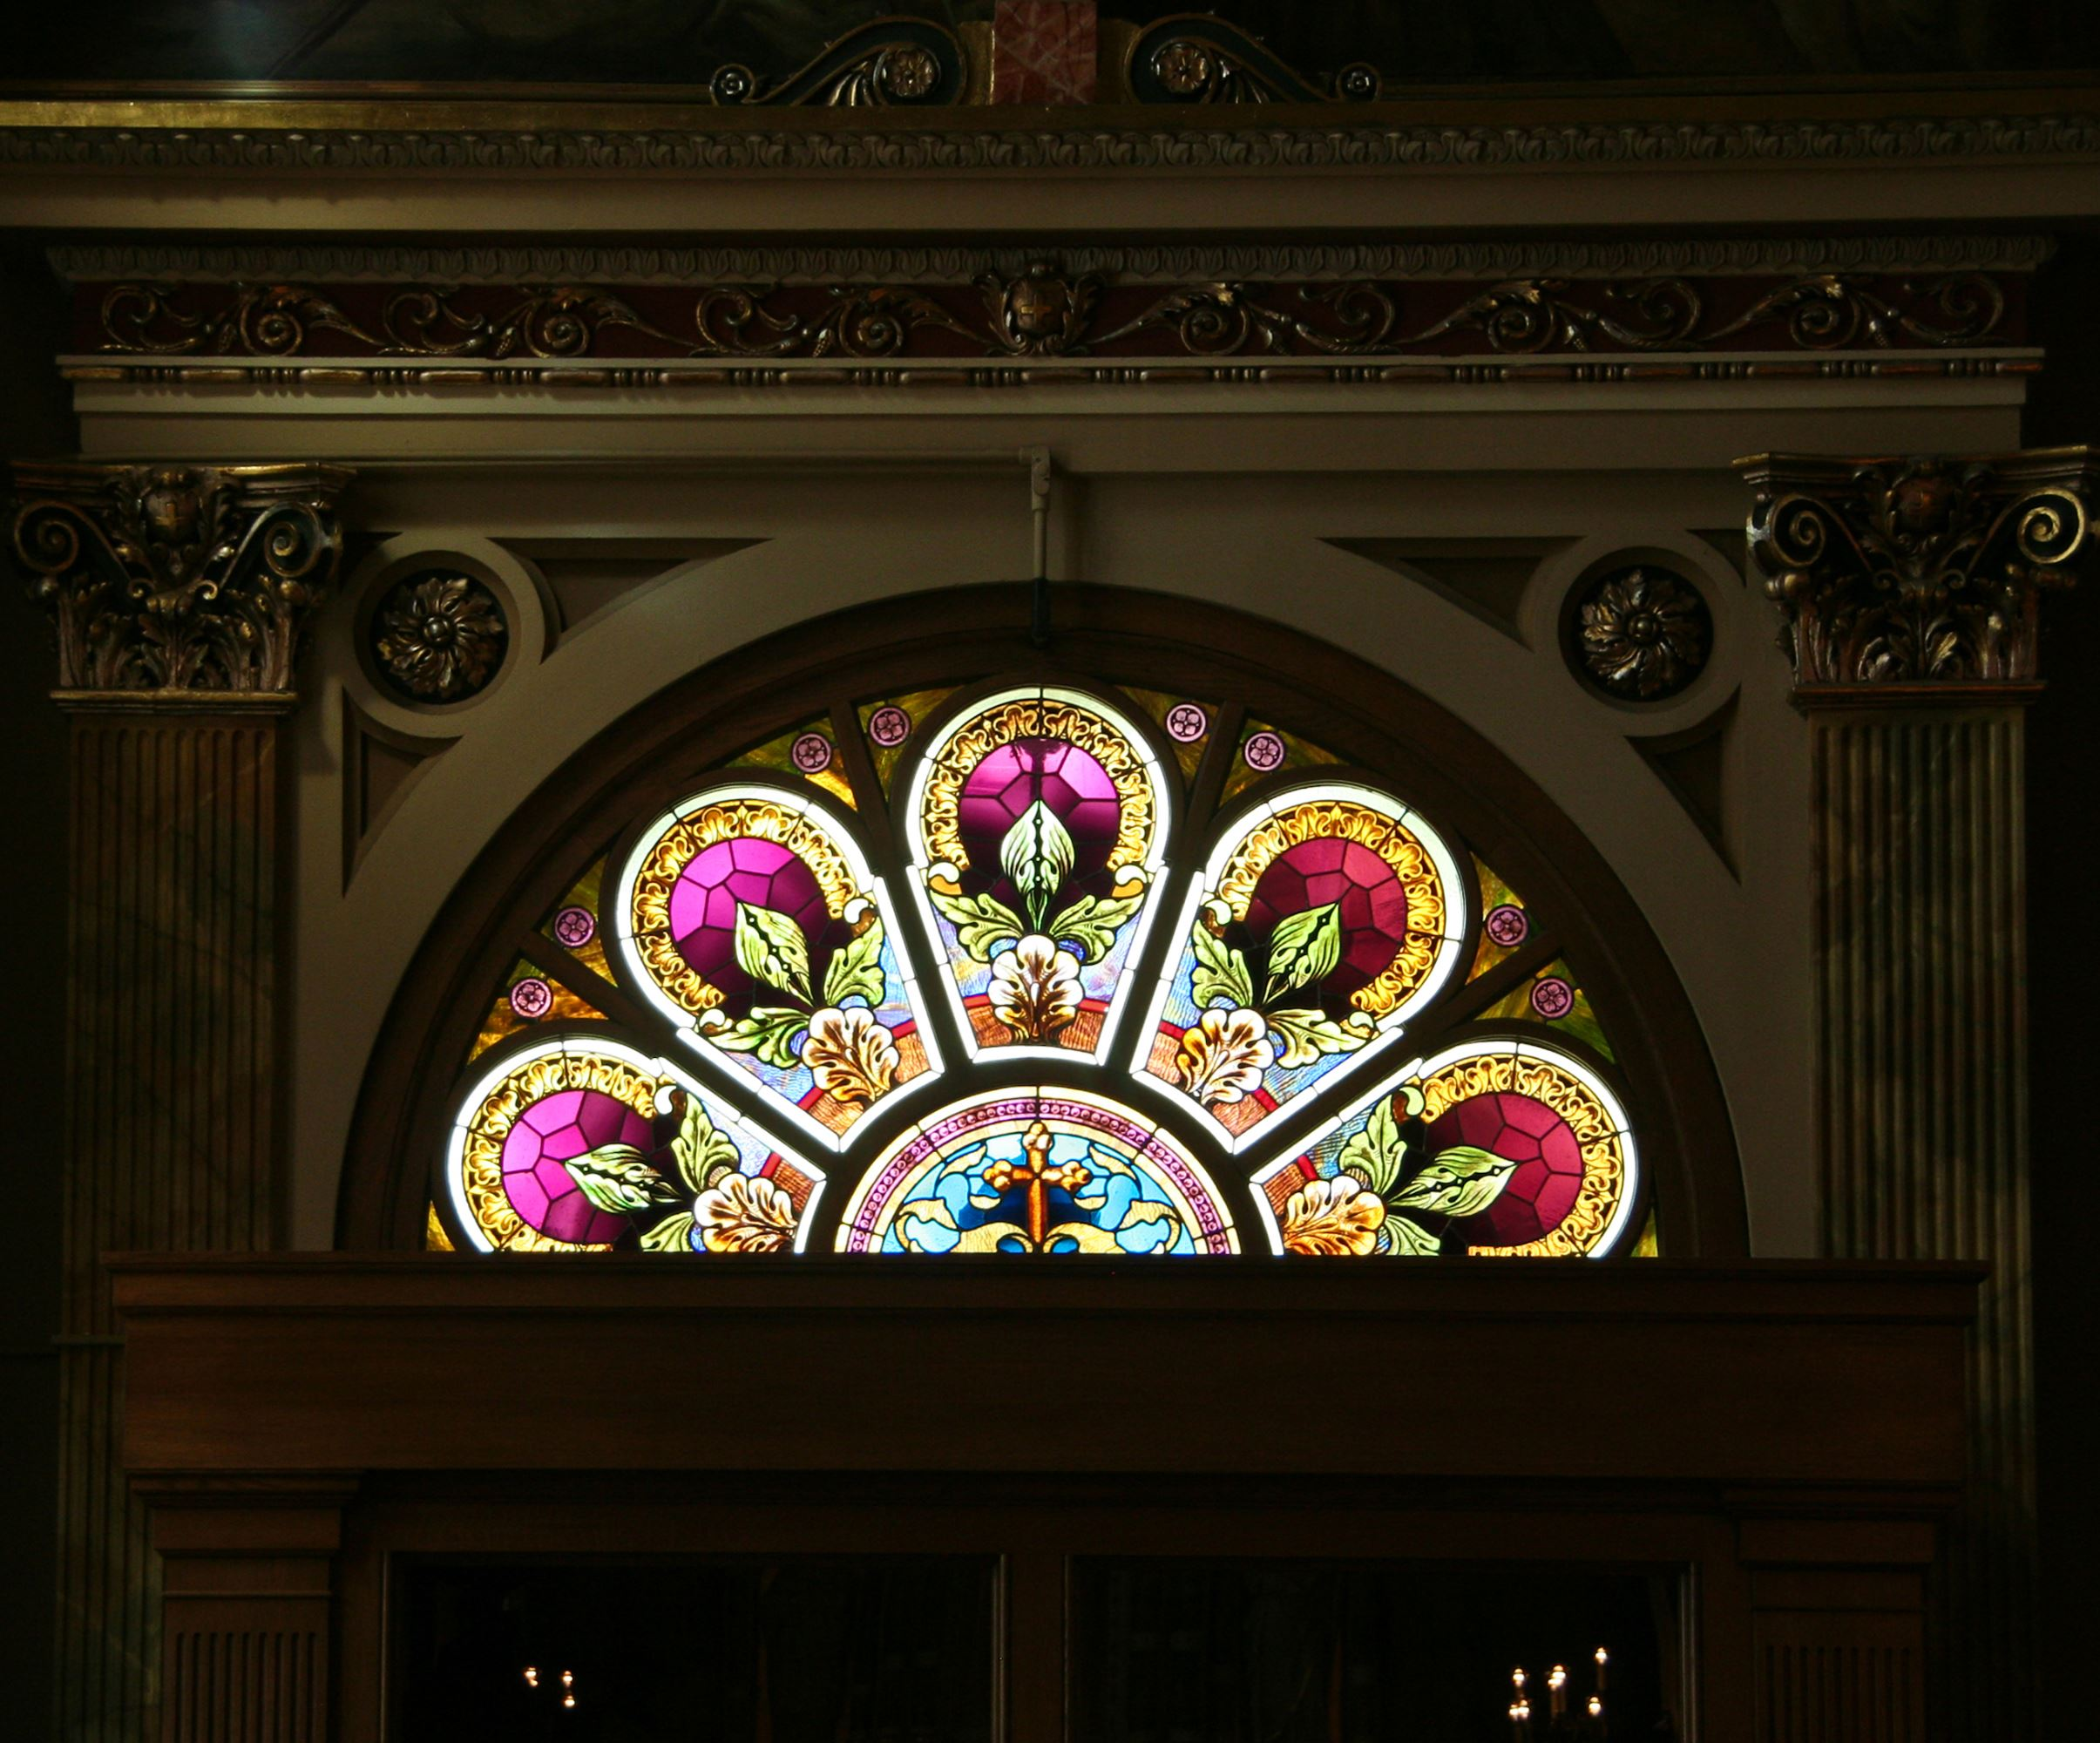 Half Circle Stained Glass Window - Presented by Pella Windows & Doors of Wisconsin